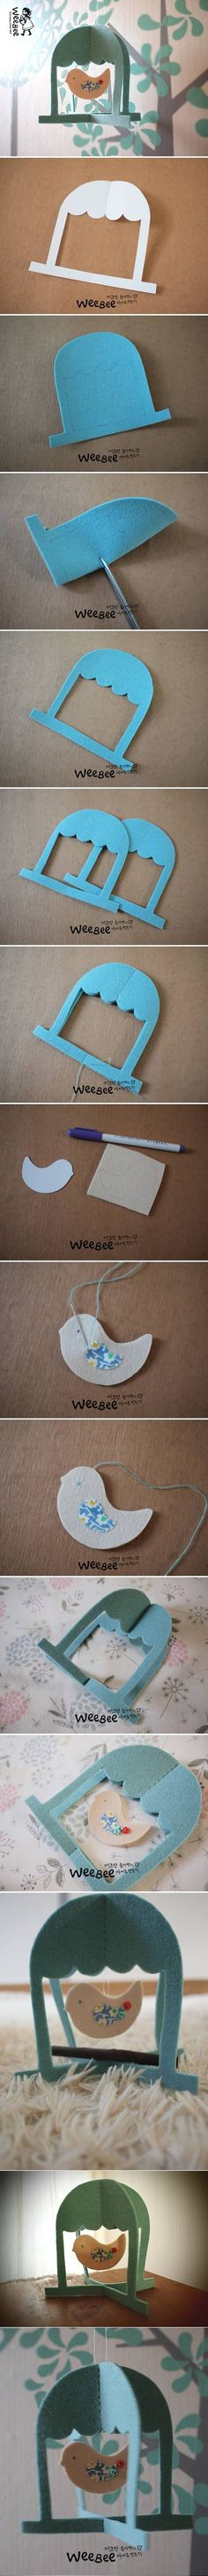 "<input+type=""hidden""+value=""""+data-frizzlyPostContainer=""""+data-frizzlyPostUrl=""http://www.usefuldiy.com/diy-cute-felt-bird-mobile/""+data-frizzlyPostTitle=""DIY+Cute+Felt+Bird+Mobile""+data-frizzlyHoverContainer=""""><p>>>>+Craft+Tutorials+More+Free+Instructions+Free+Tutorials+More+Craft+Tutorials</p>"